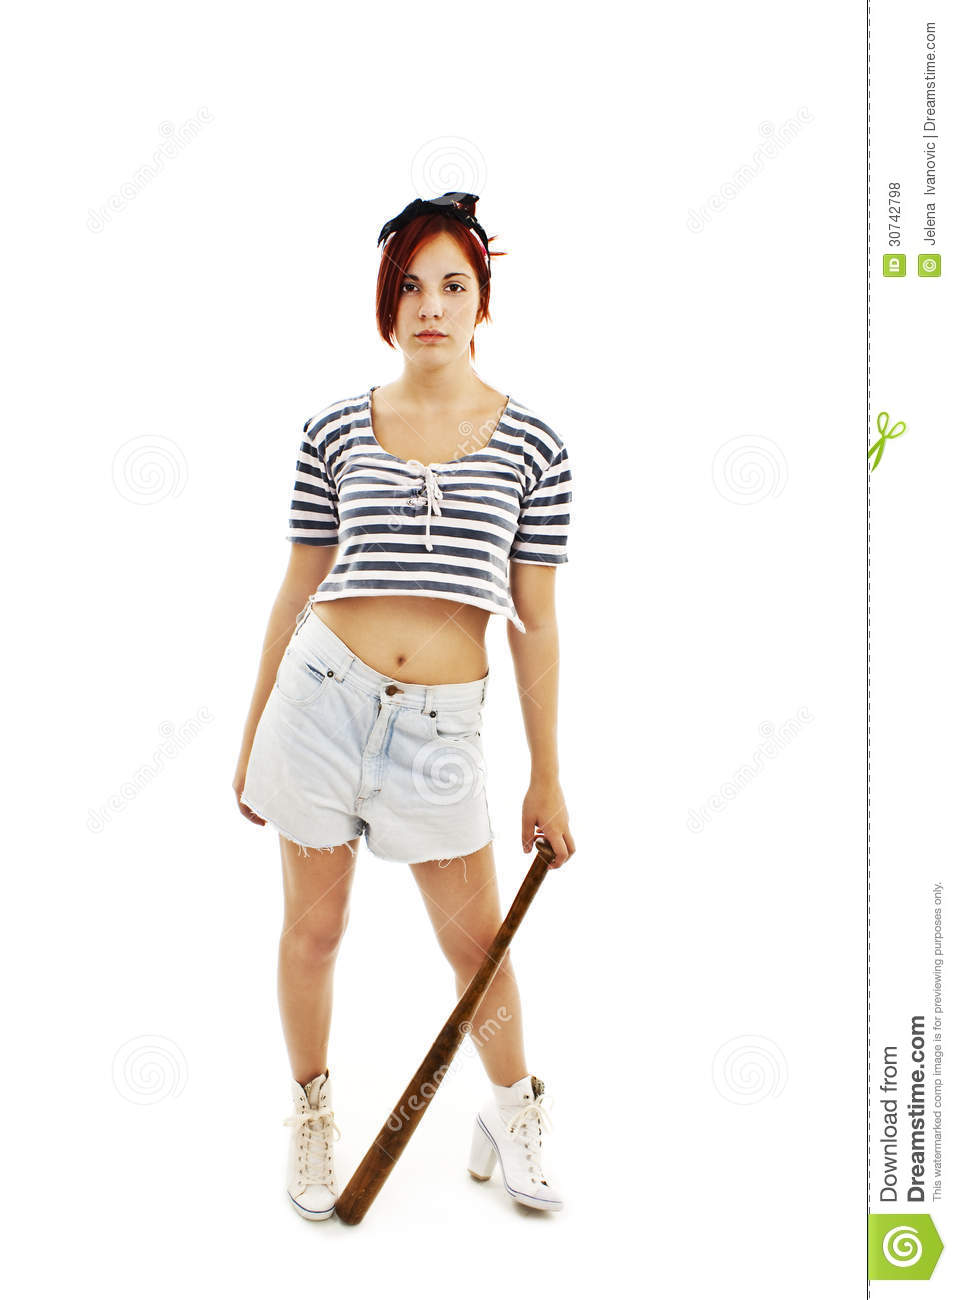 Punk Girl With A Bat Royalty Free Stock Photos - Image: 30742798